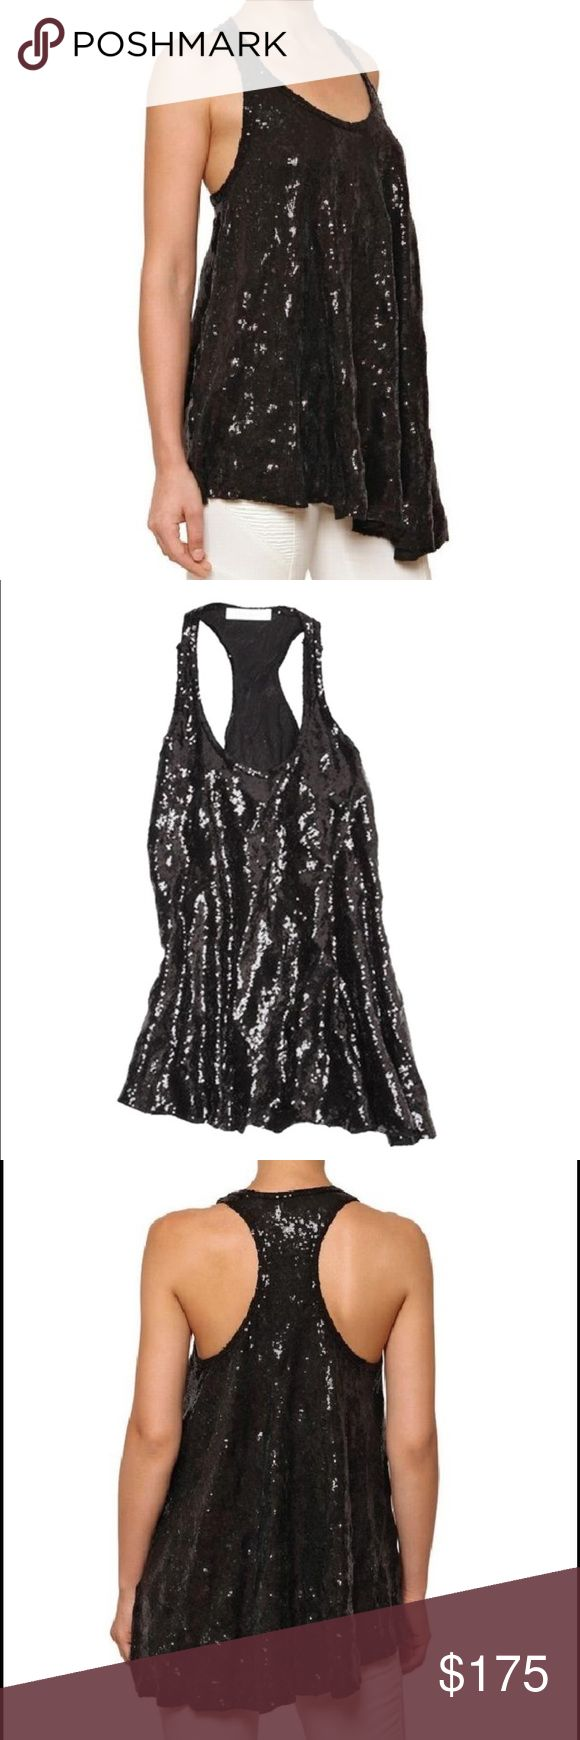 Balmain Asymmetrical Sequin Top Pierre Balmain Black Asymmetric Sequined Tank Top    Brand new with the tags!!! Size Extra-Small    This PIERRE BALMAIN women's oversize black poly-blend tank top dress is a STYLISH and VERSATILE piece!  Cut from breathable fabric with an elastane give, it sports EYE-CATCHING flawy sequin detailing throughout,  a scoop neckline, and an asymmetrical hem at its opening.  This piece is GORGEOUS and in FANTASTIC condition!    Please ask any other questions…